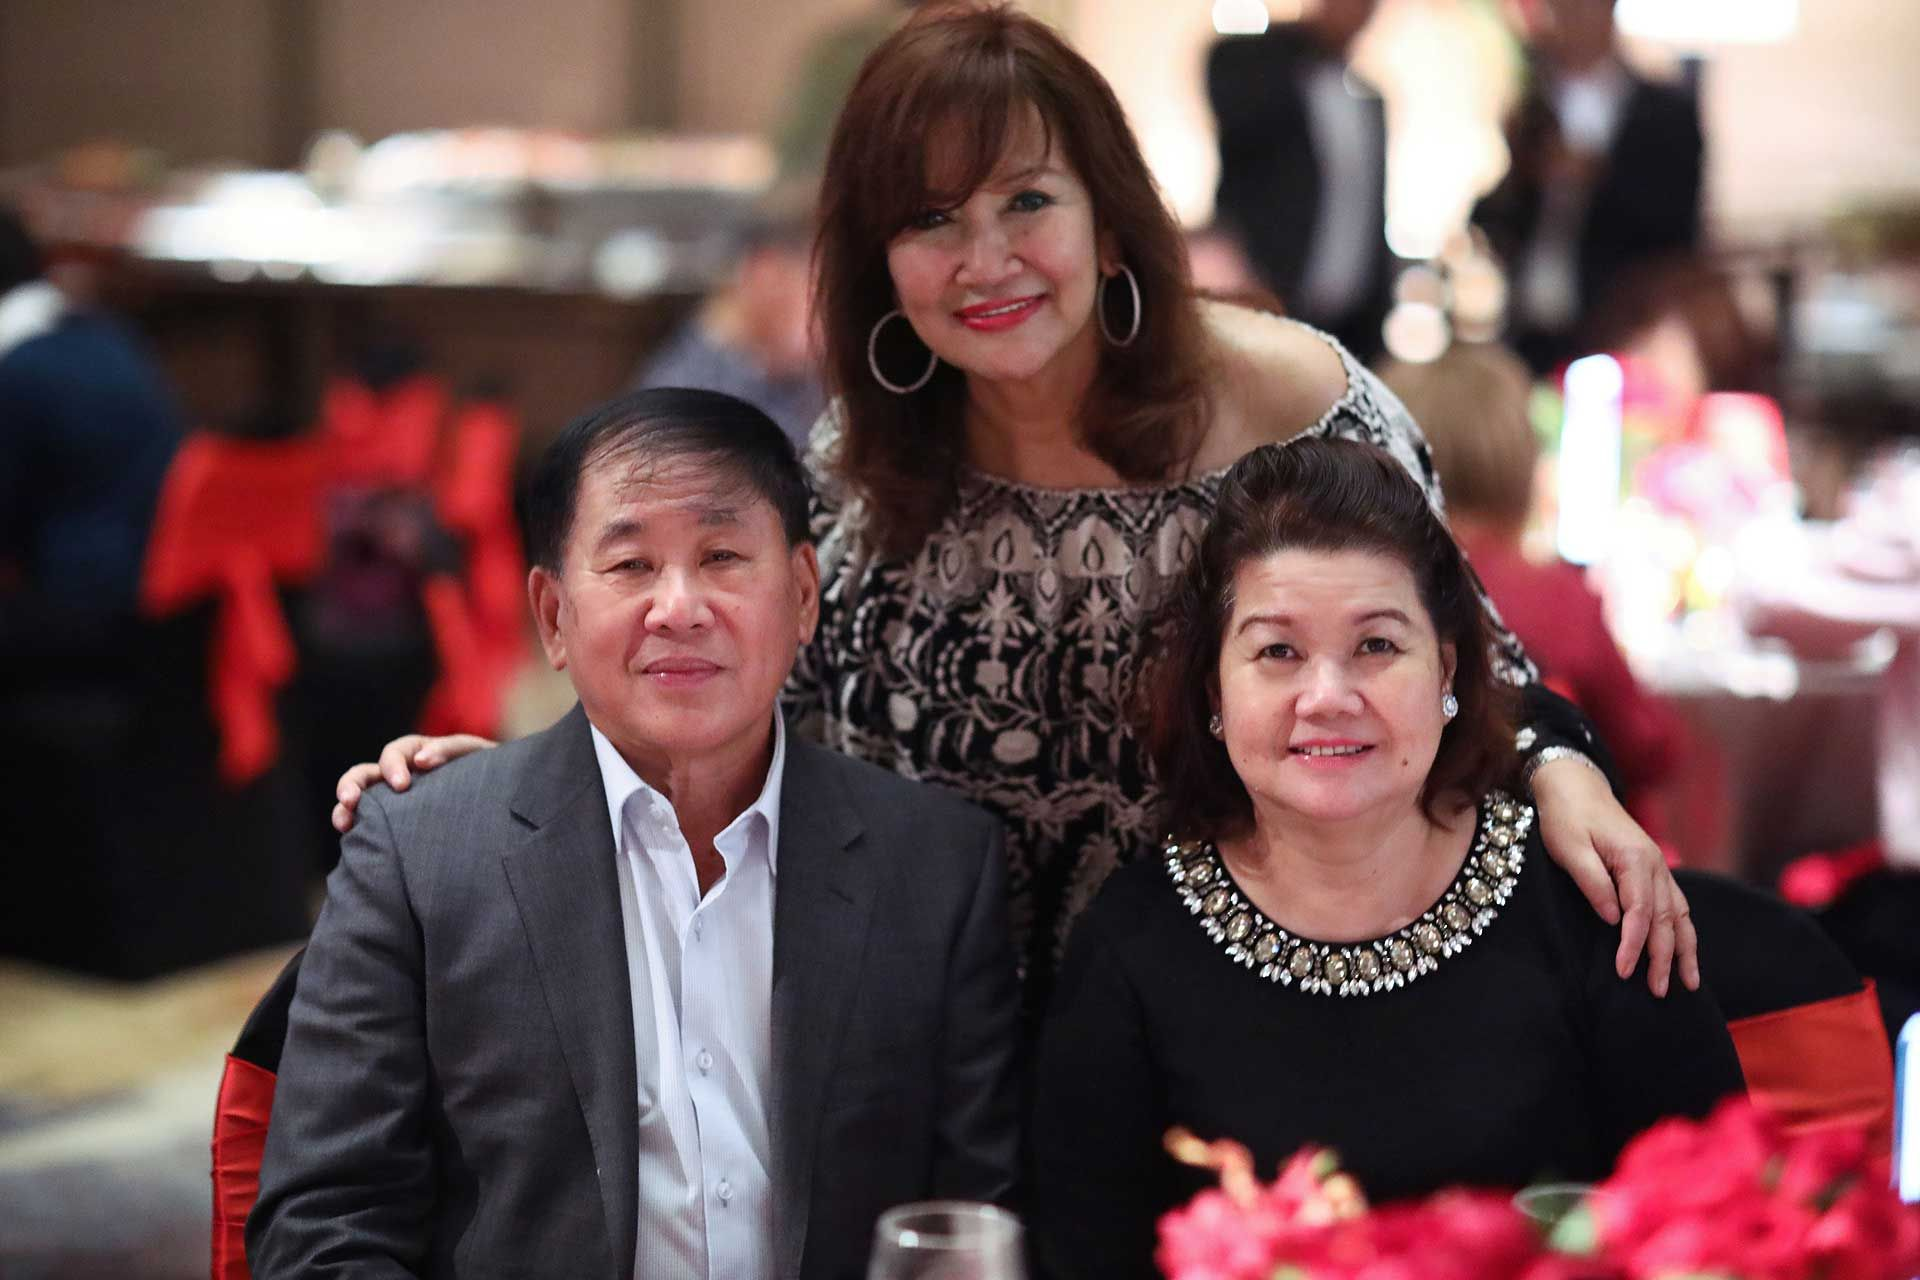 Tan Sri David Cheng, Dato' Rosemarie Wee and Puan Sri Mae Cheng